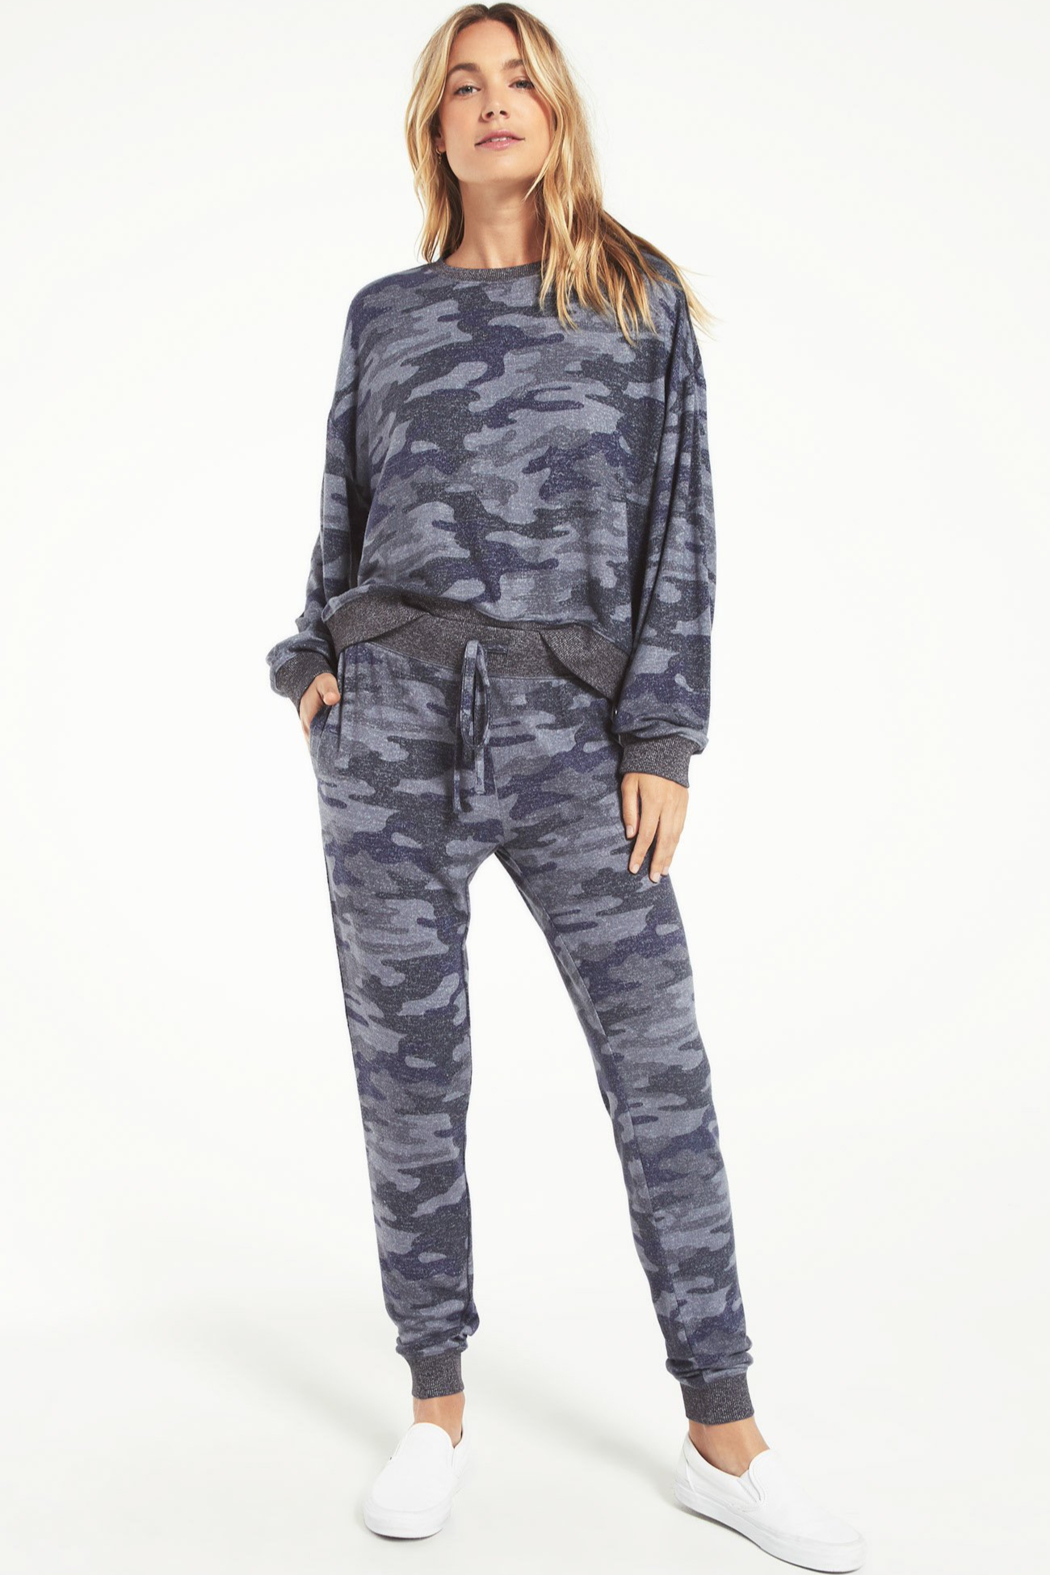 z supply Noa Camo Marled Top - Back Cropped Image